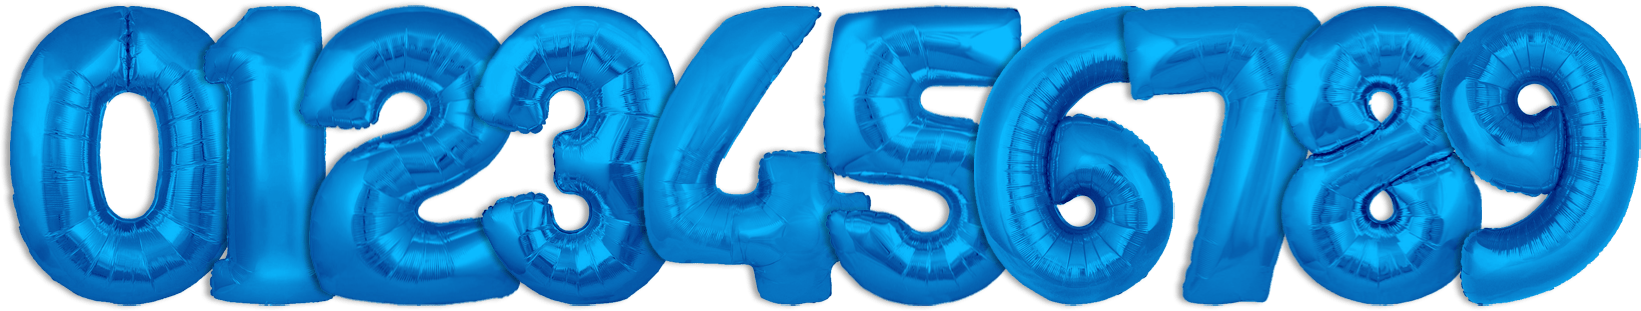 blue helium balloon numbers